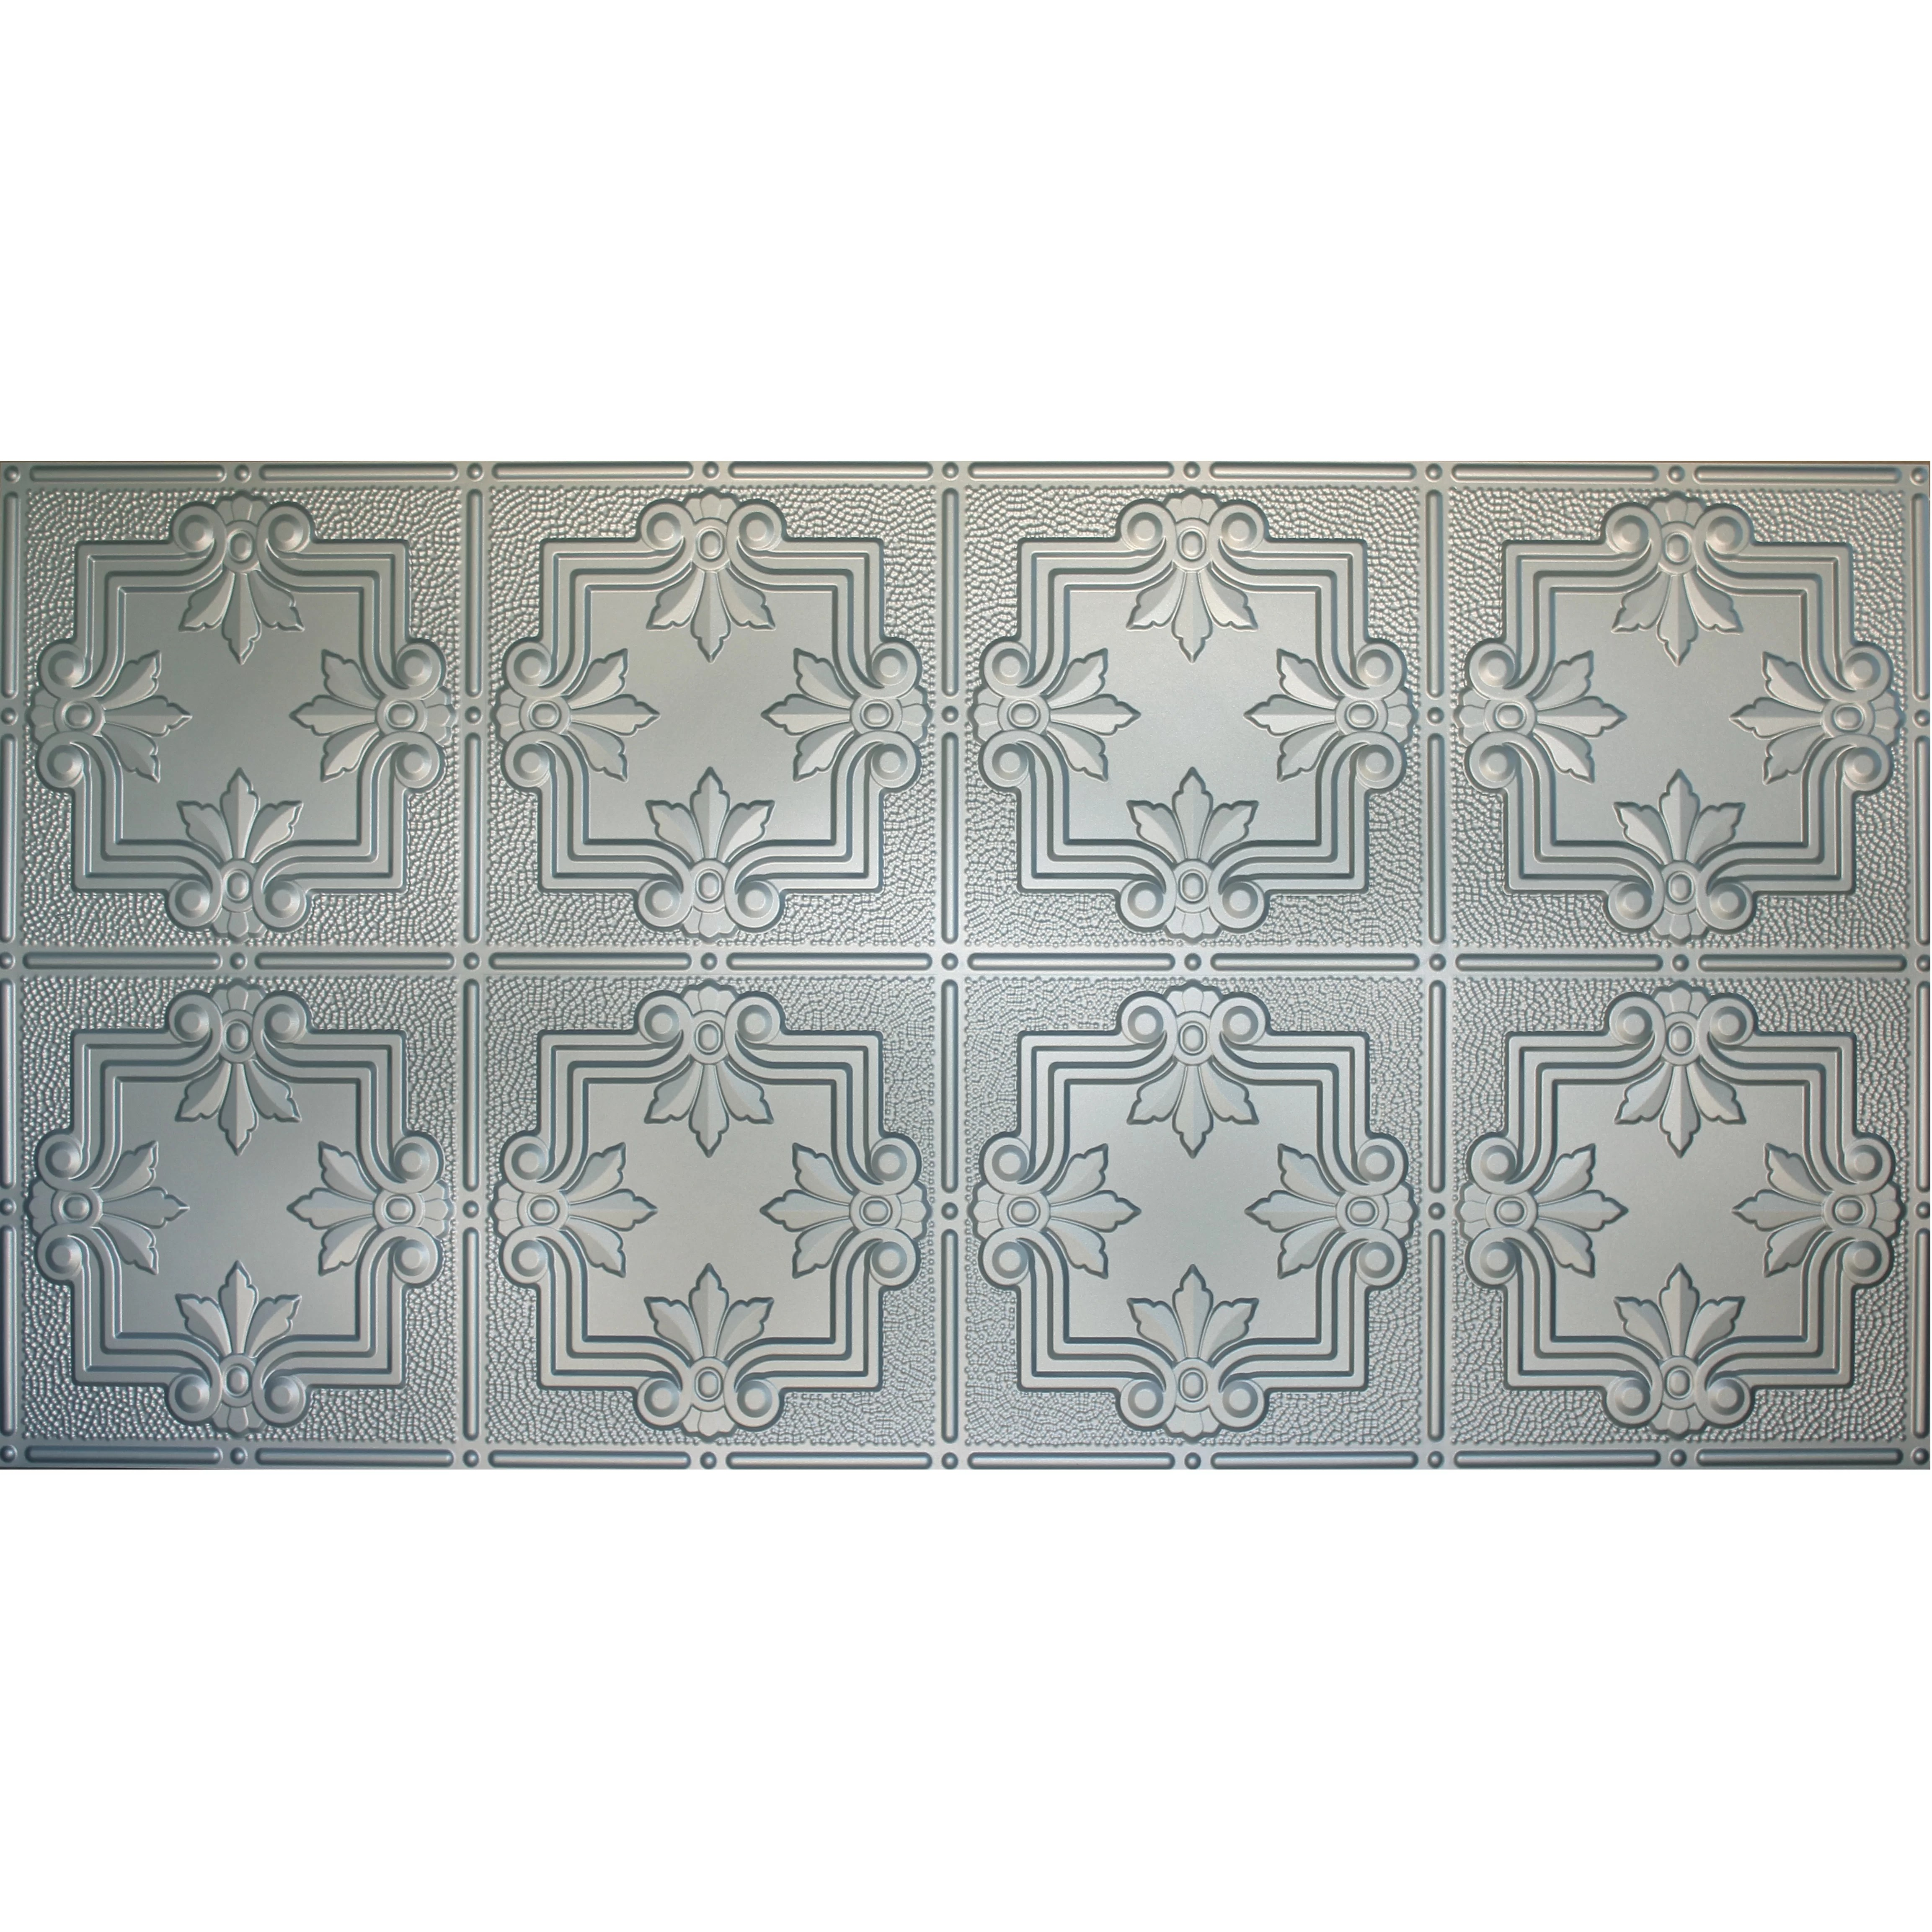 Global Specialty Products Glue Up Fleur De Lis Pattern 2